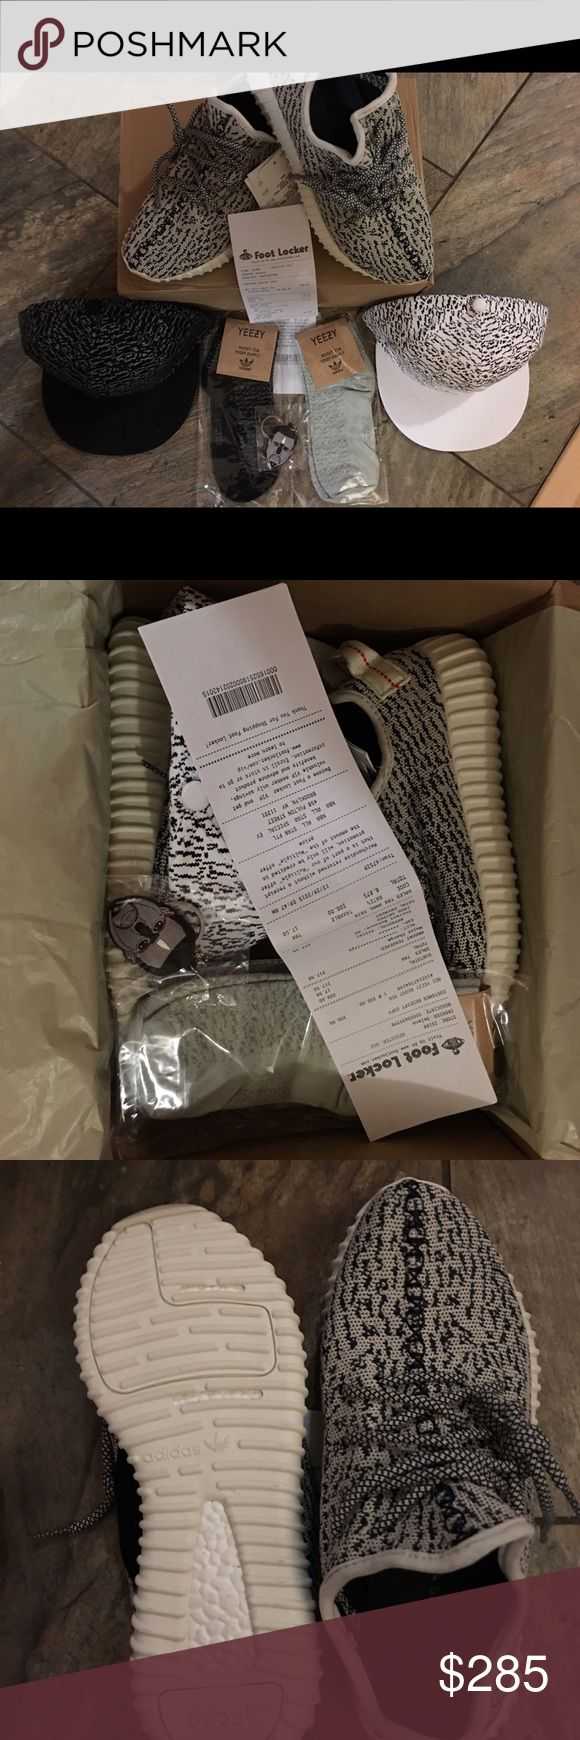 Bundle!! Turtle dove Yeezy boost 350 size 7-8!!!! I have size 7 and 8 available. Brand new never worn. Very comfortable. Price is not firm so feel free to make an offer. These are black and white. Everything you see in the photos will be included when you buy. Shipping is the next day you buy. Feel free to message me if you have any questions. Adidas Shoes Athletic Shoes